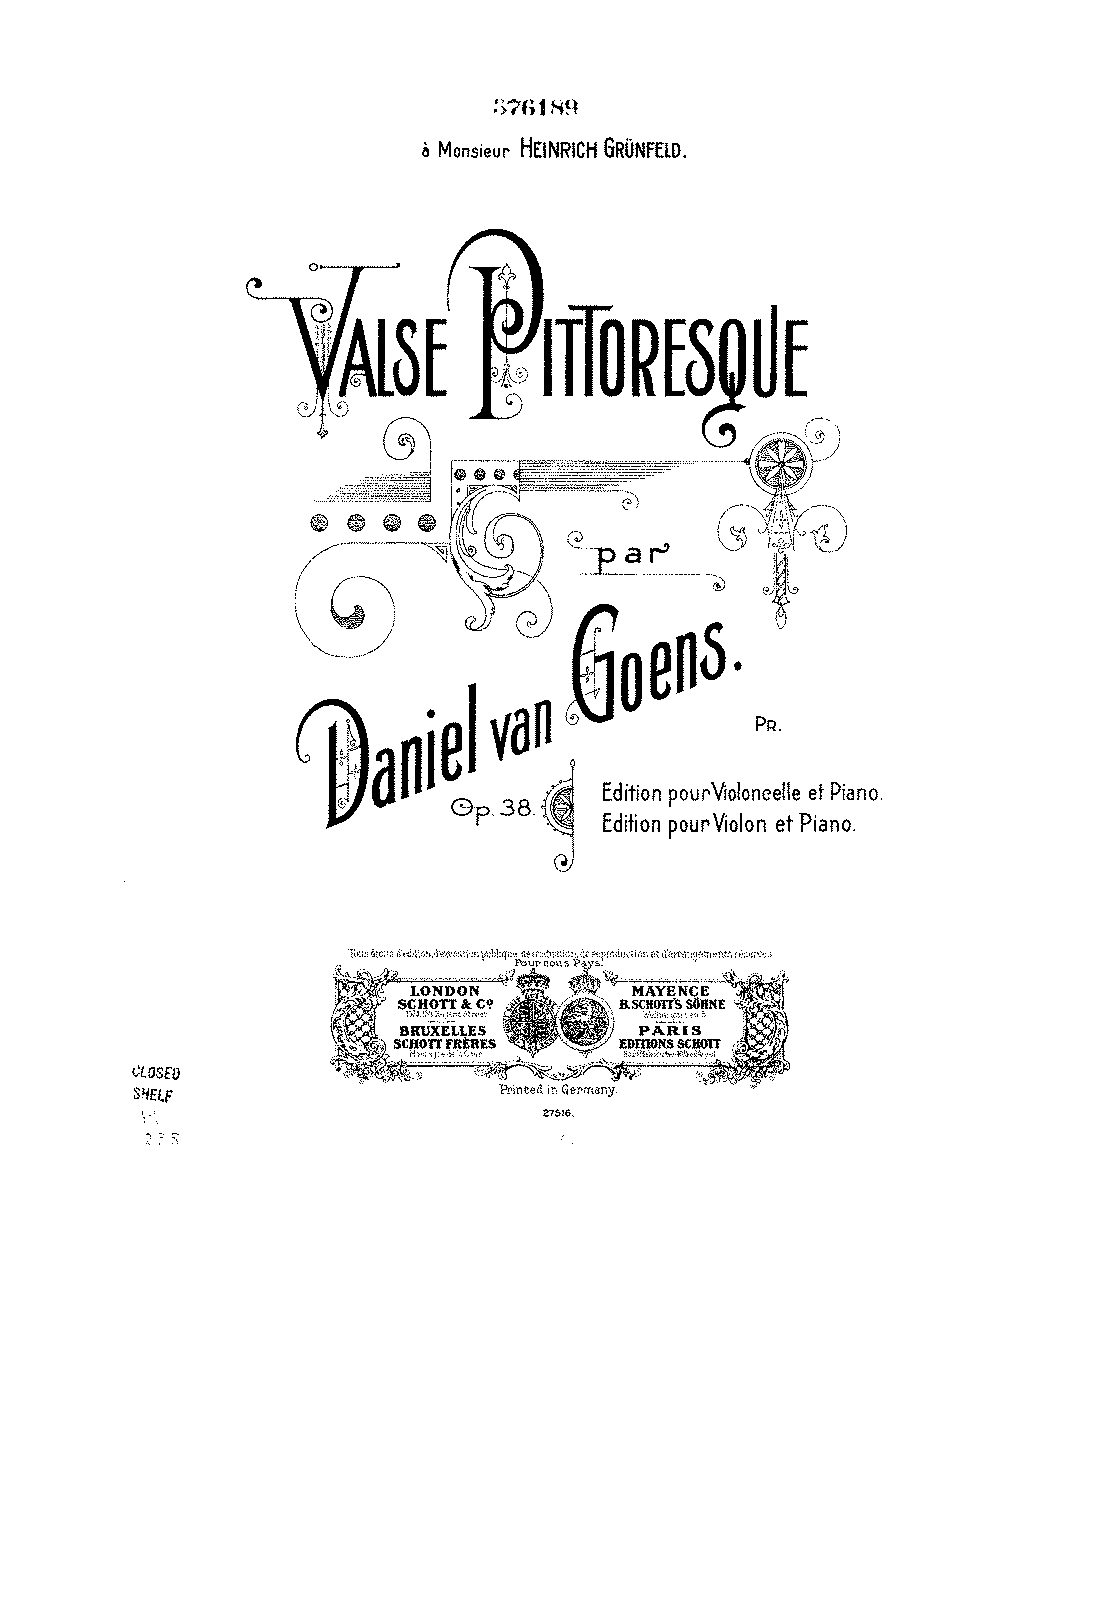 PMLP137556-Goens - Valse Pittoresque Op38 piano score.pdf